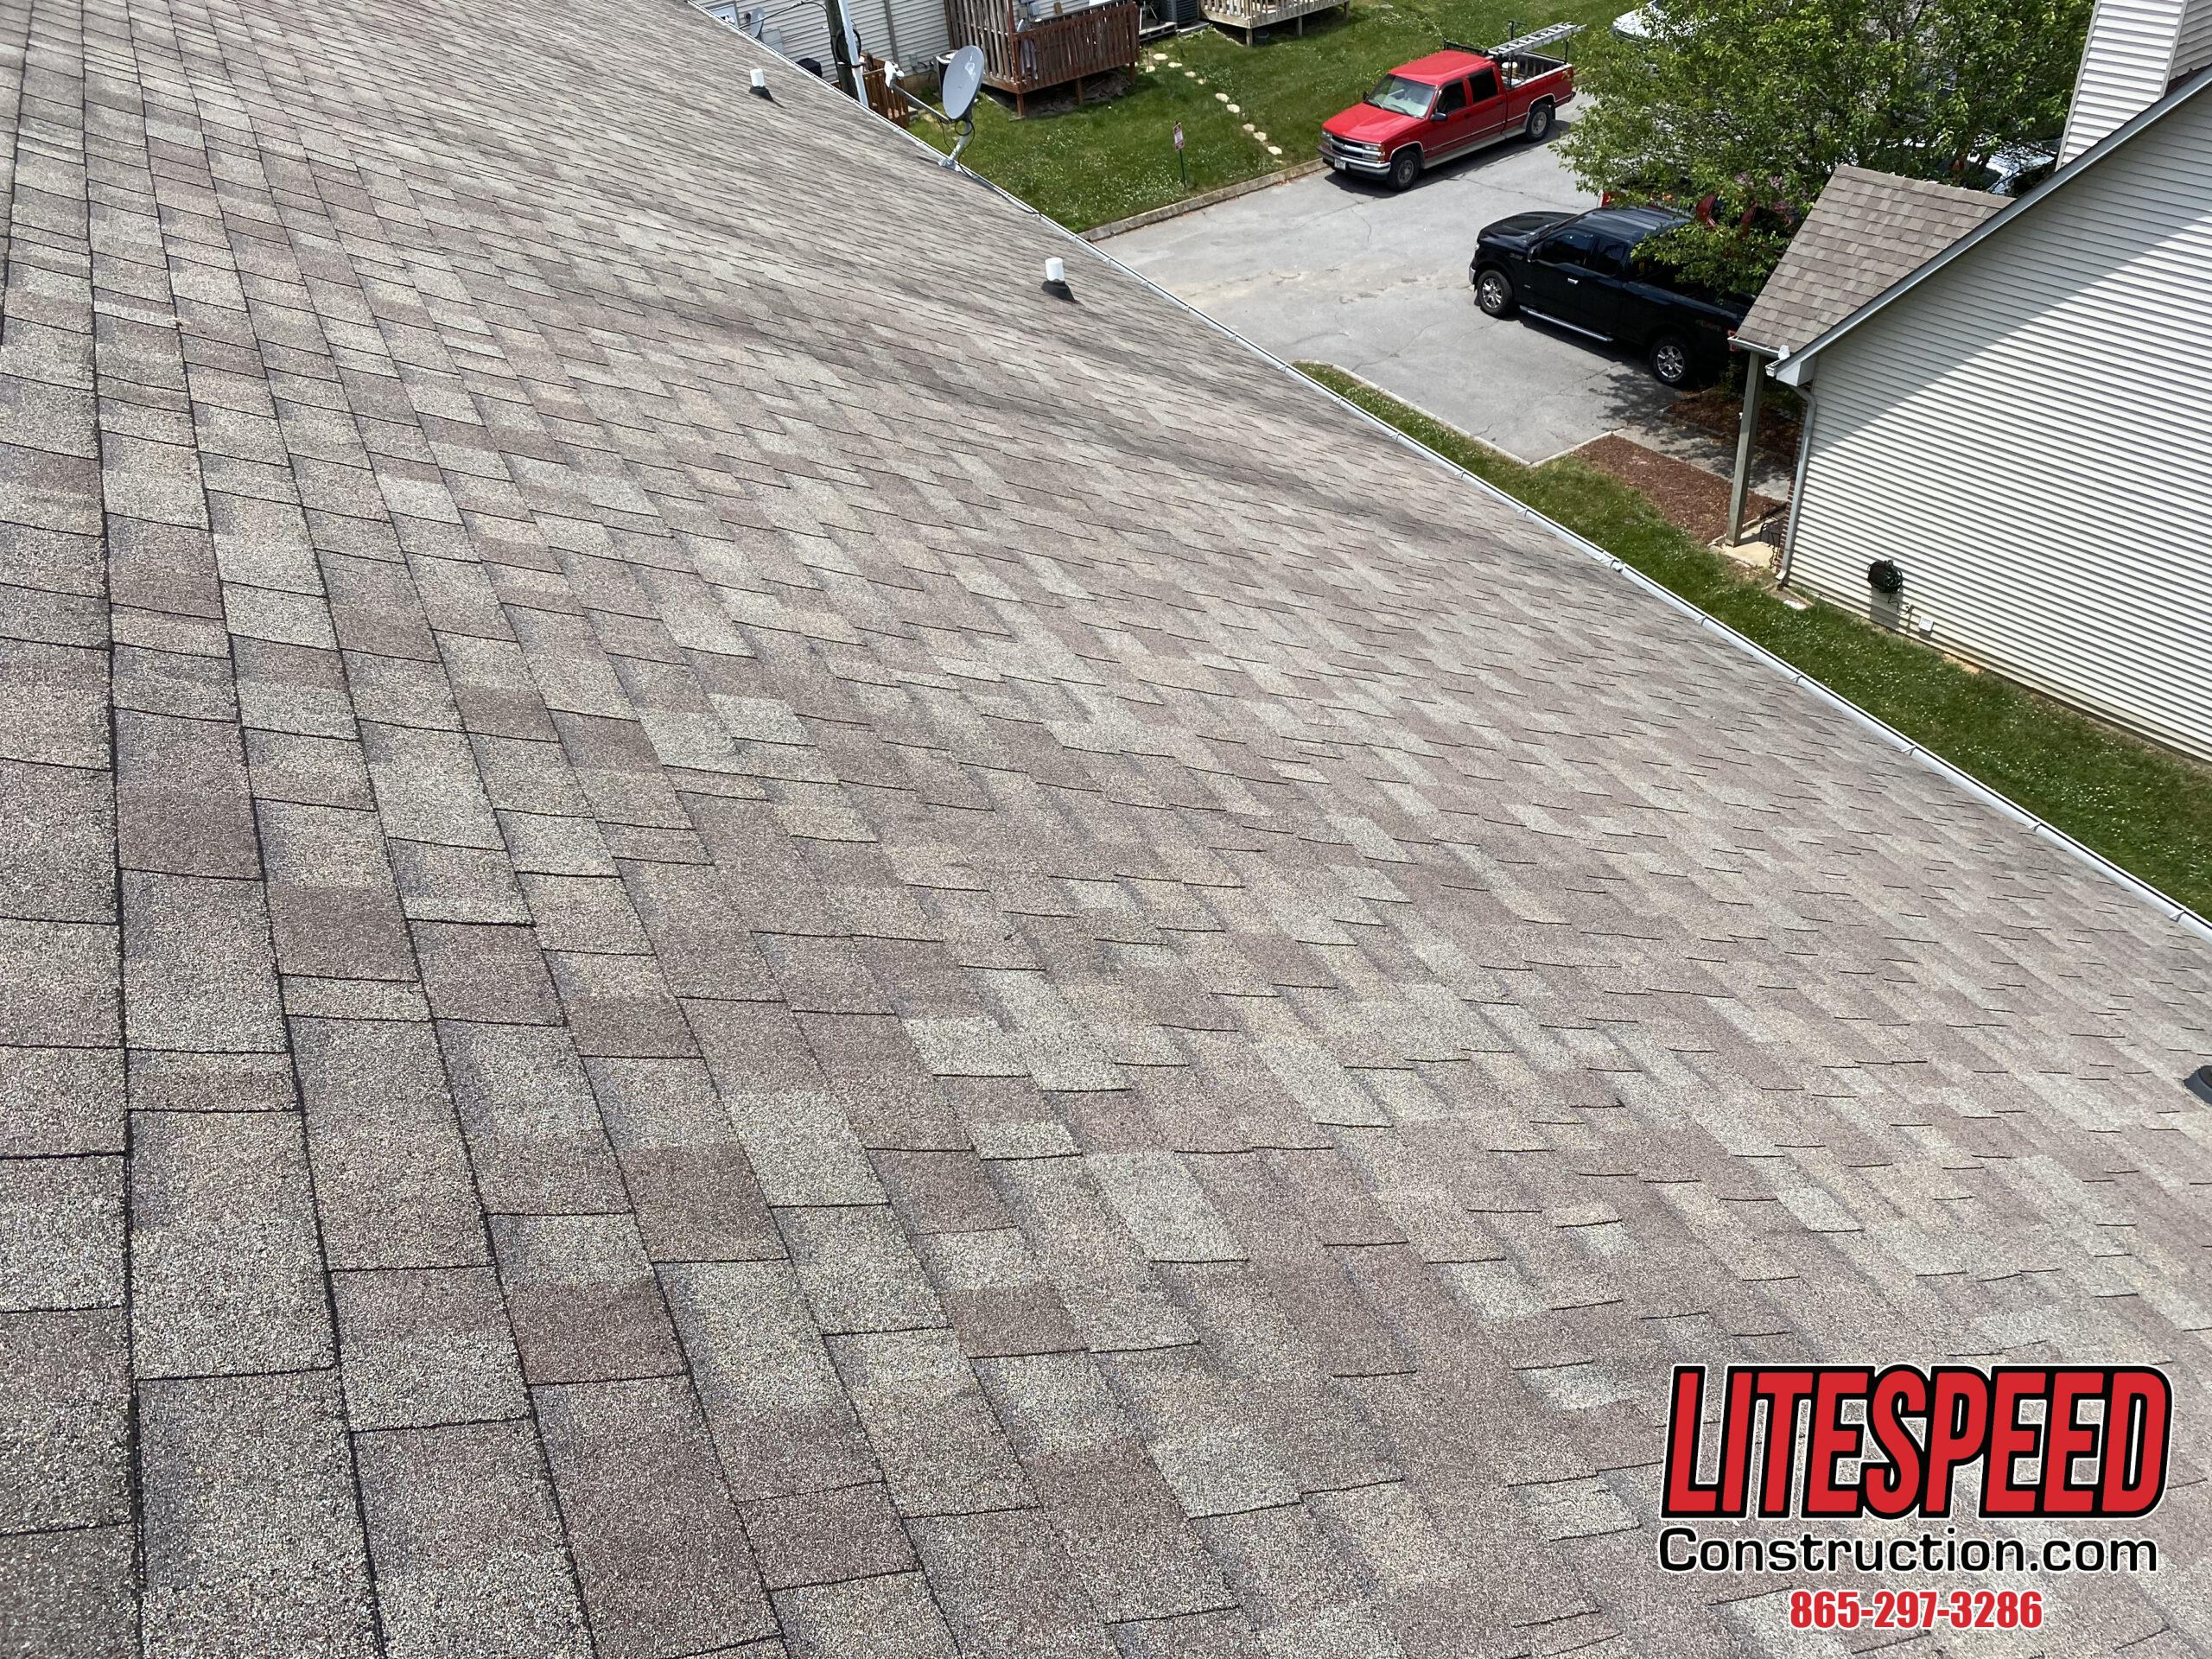 This is a picture of shingles in good shape and staggered correctly